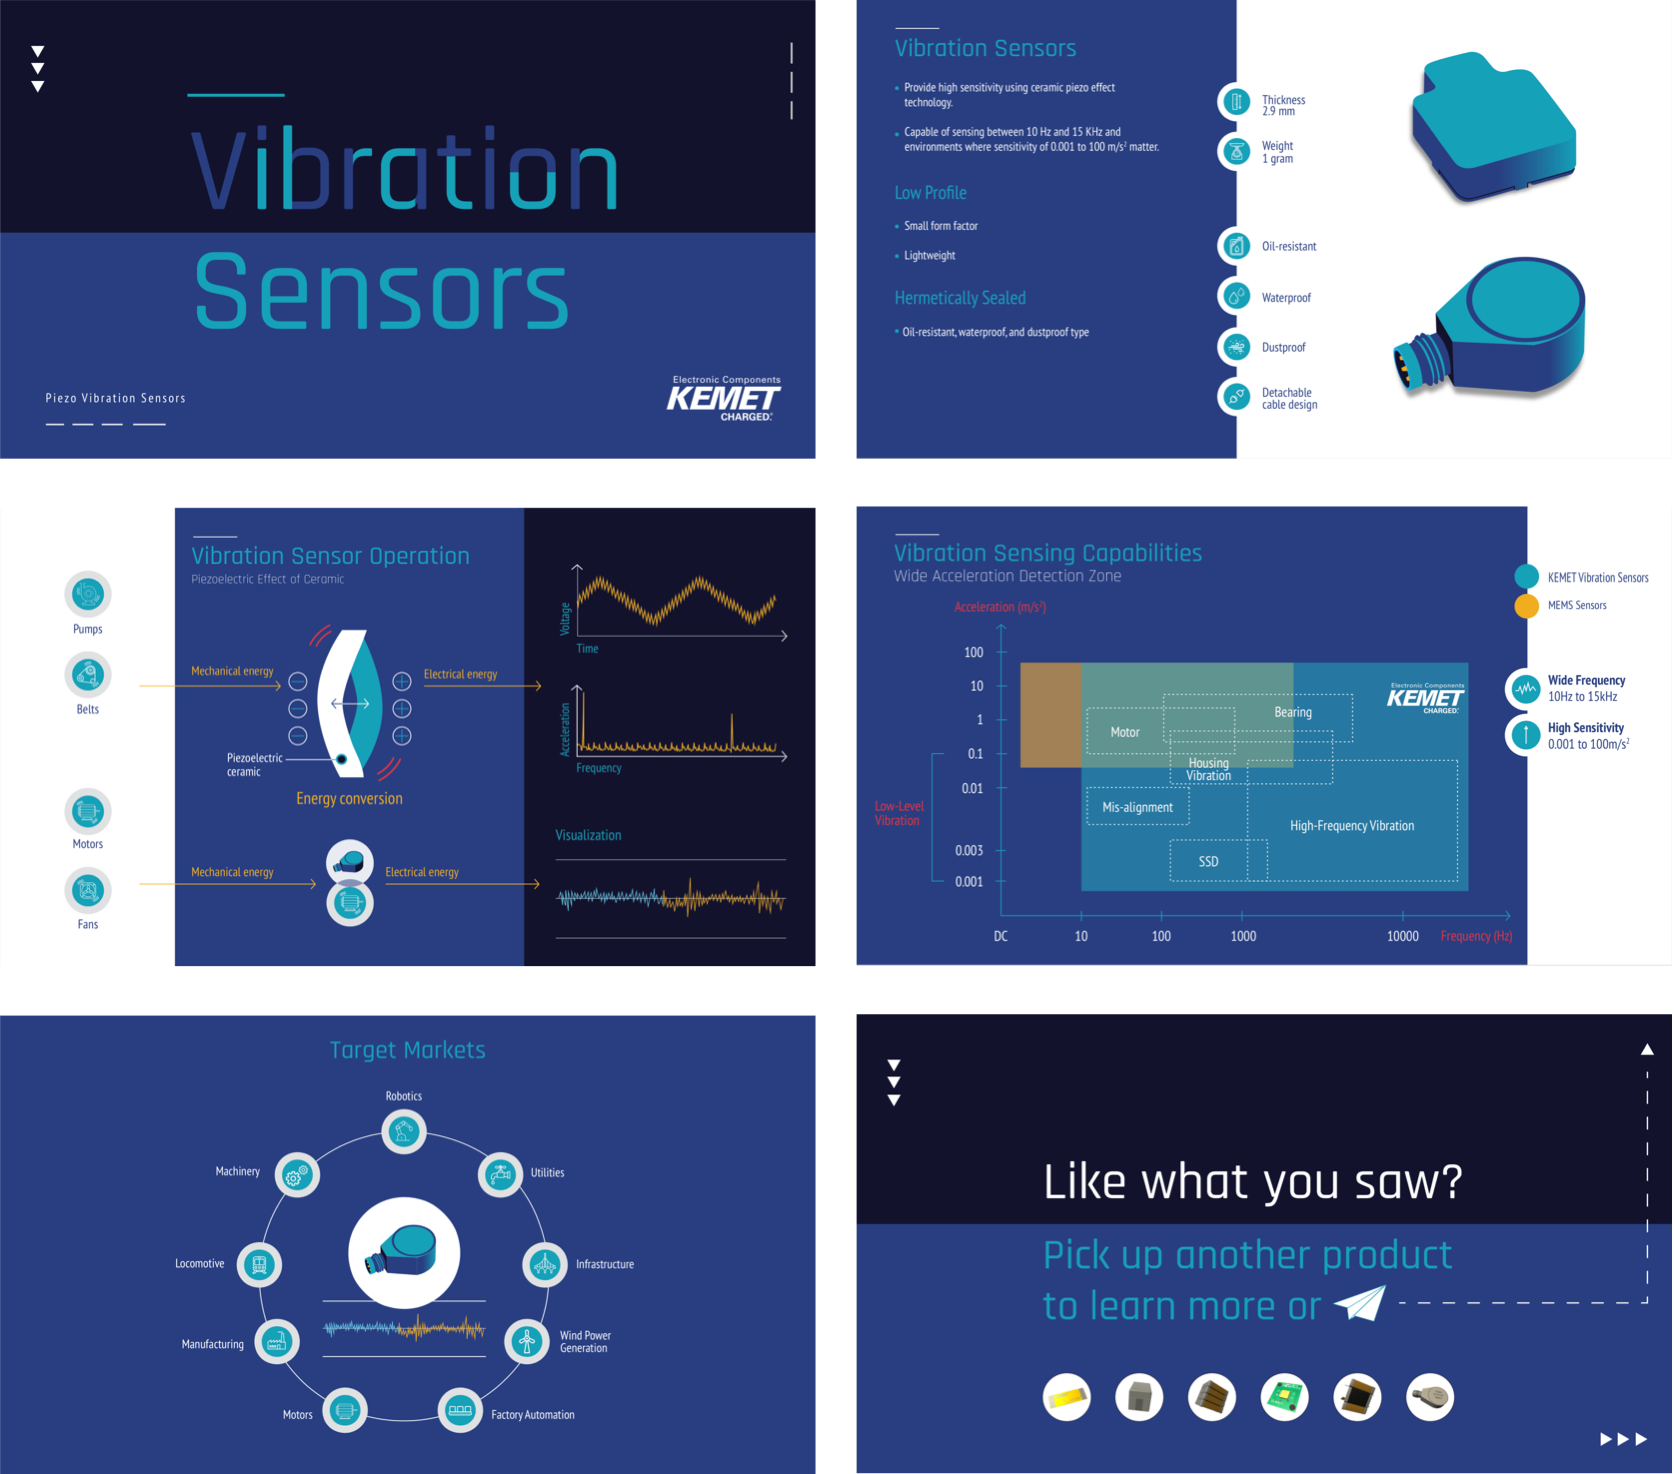 Four screenshots from the Vibration Sensors deck at the Electronica trade show. The deck is a mix of blues and whites, modern type, charts, and component illustrations.